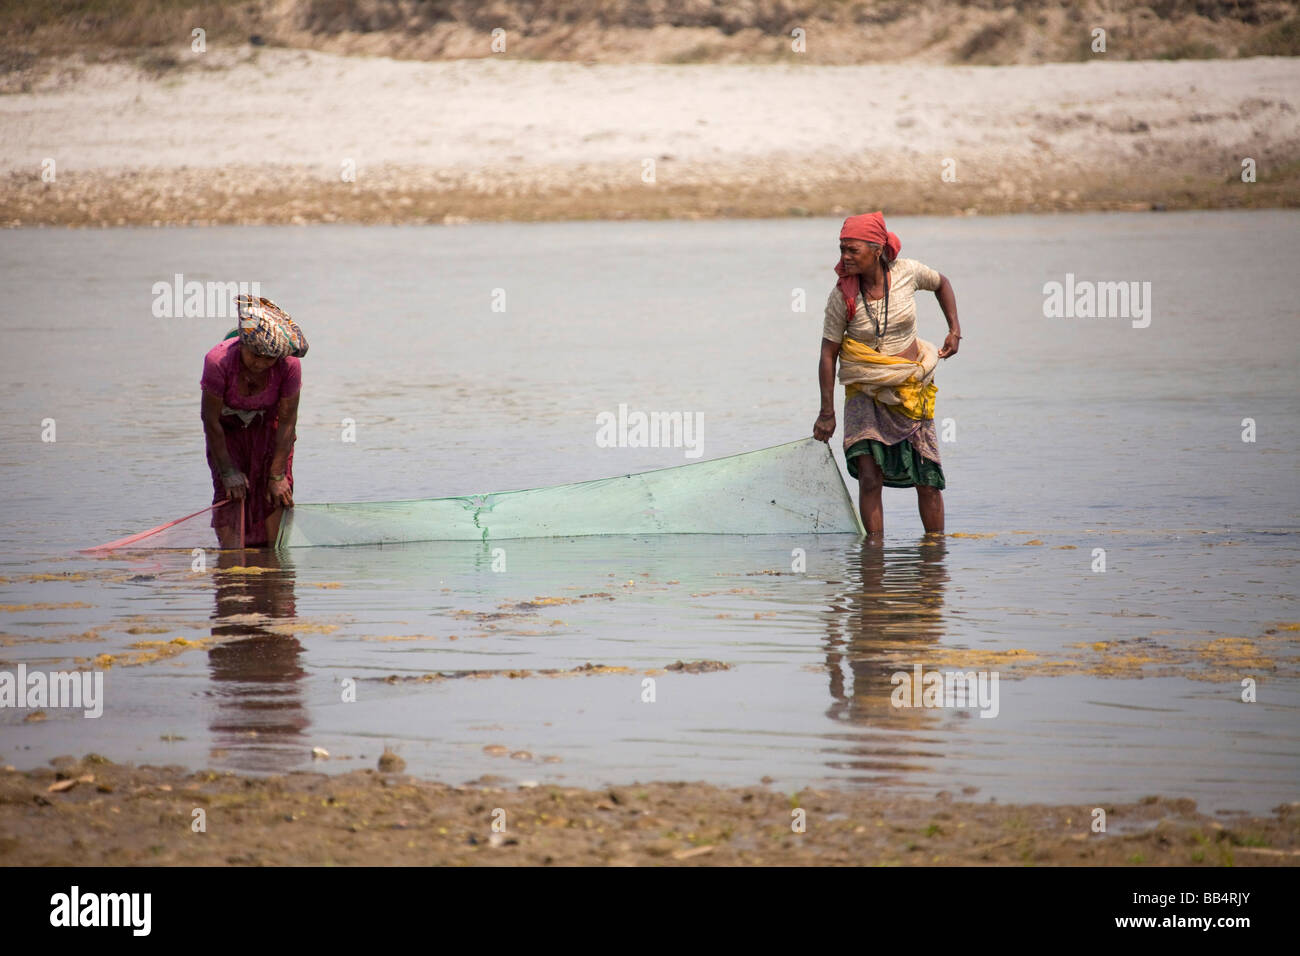 local Women fishing with net waste high in river water